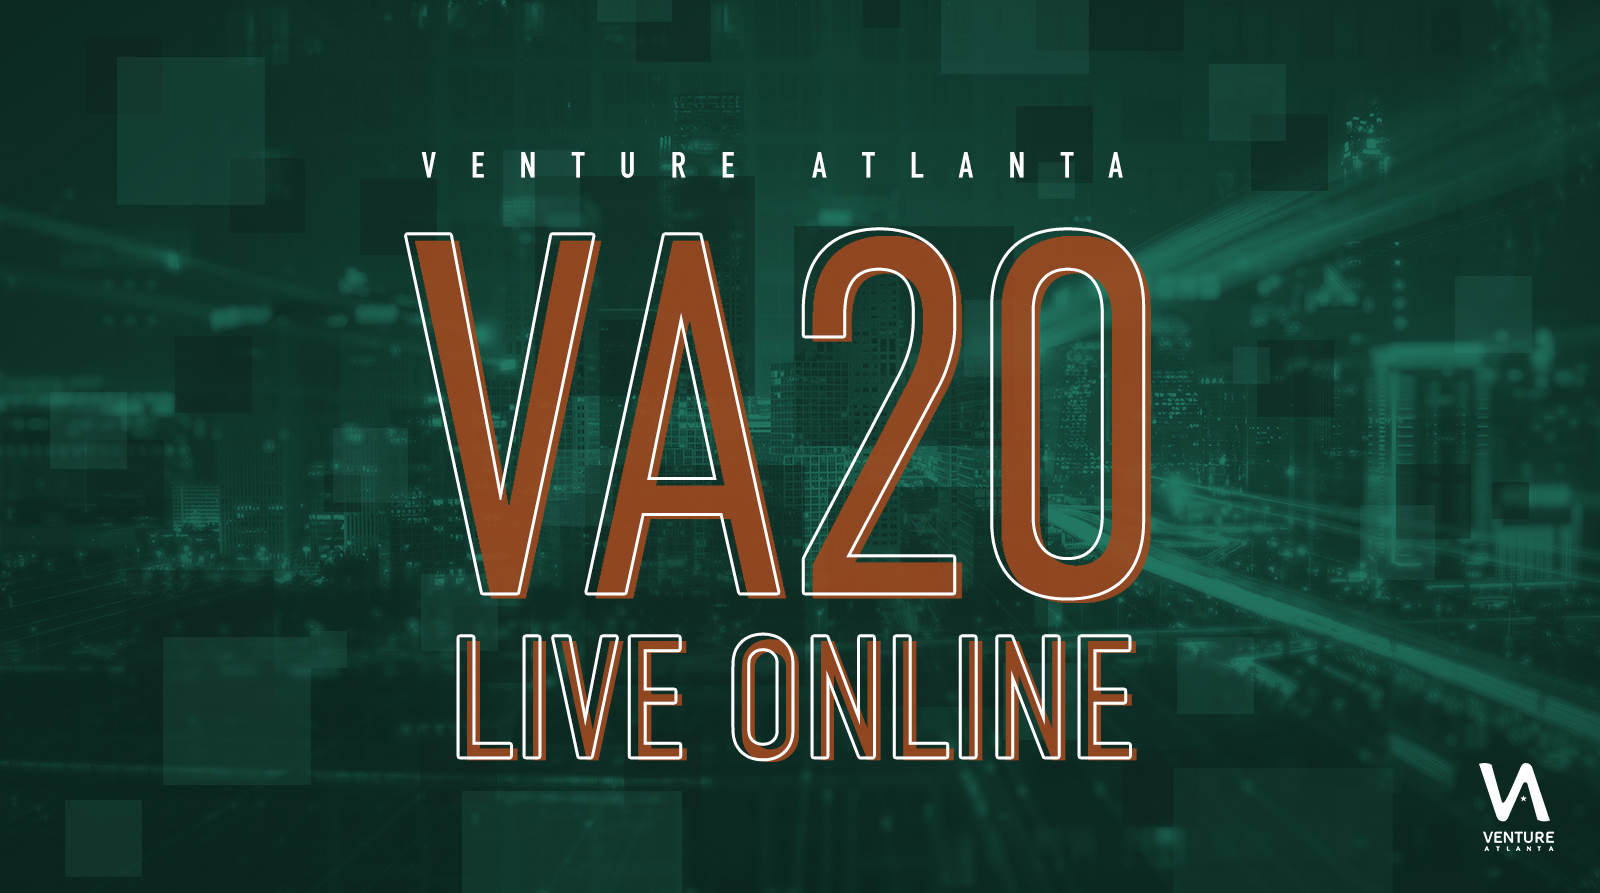 Machfu Selected as a Venture Atlanta 2020 Presenting Company